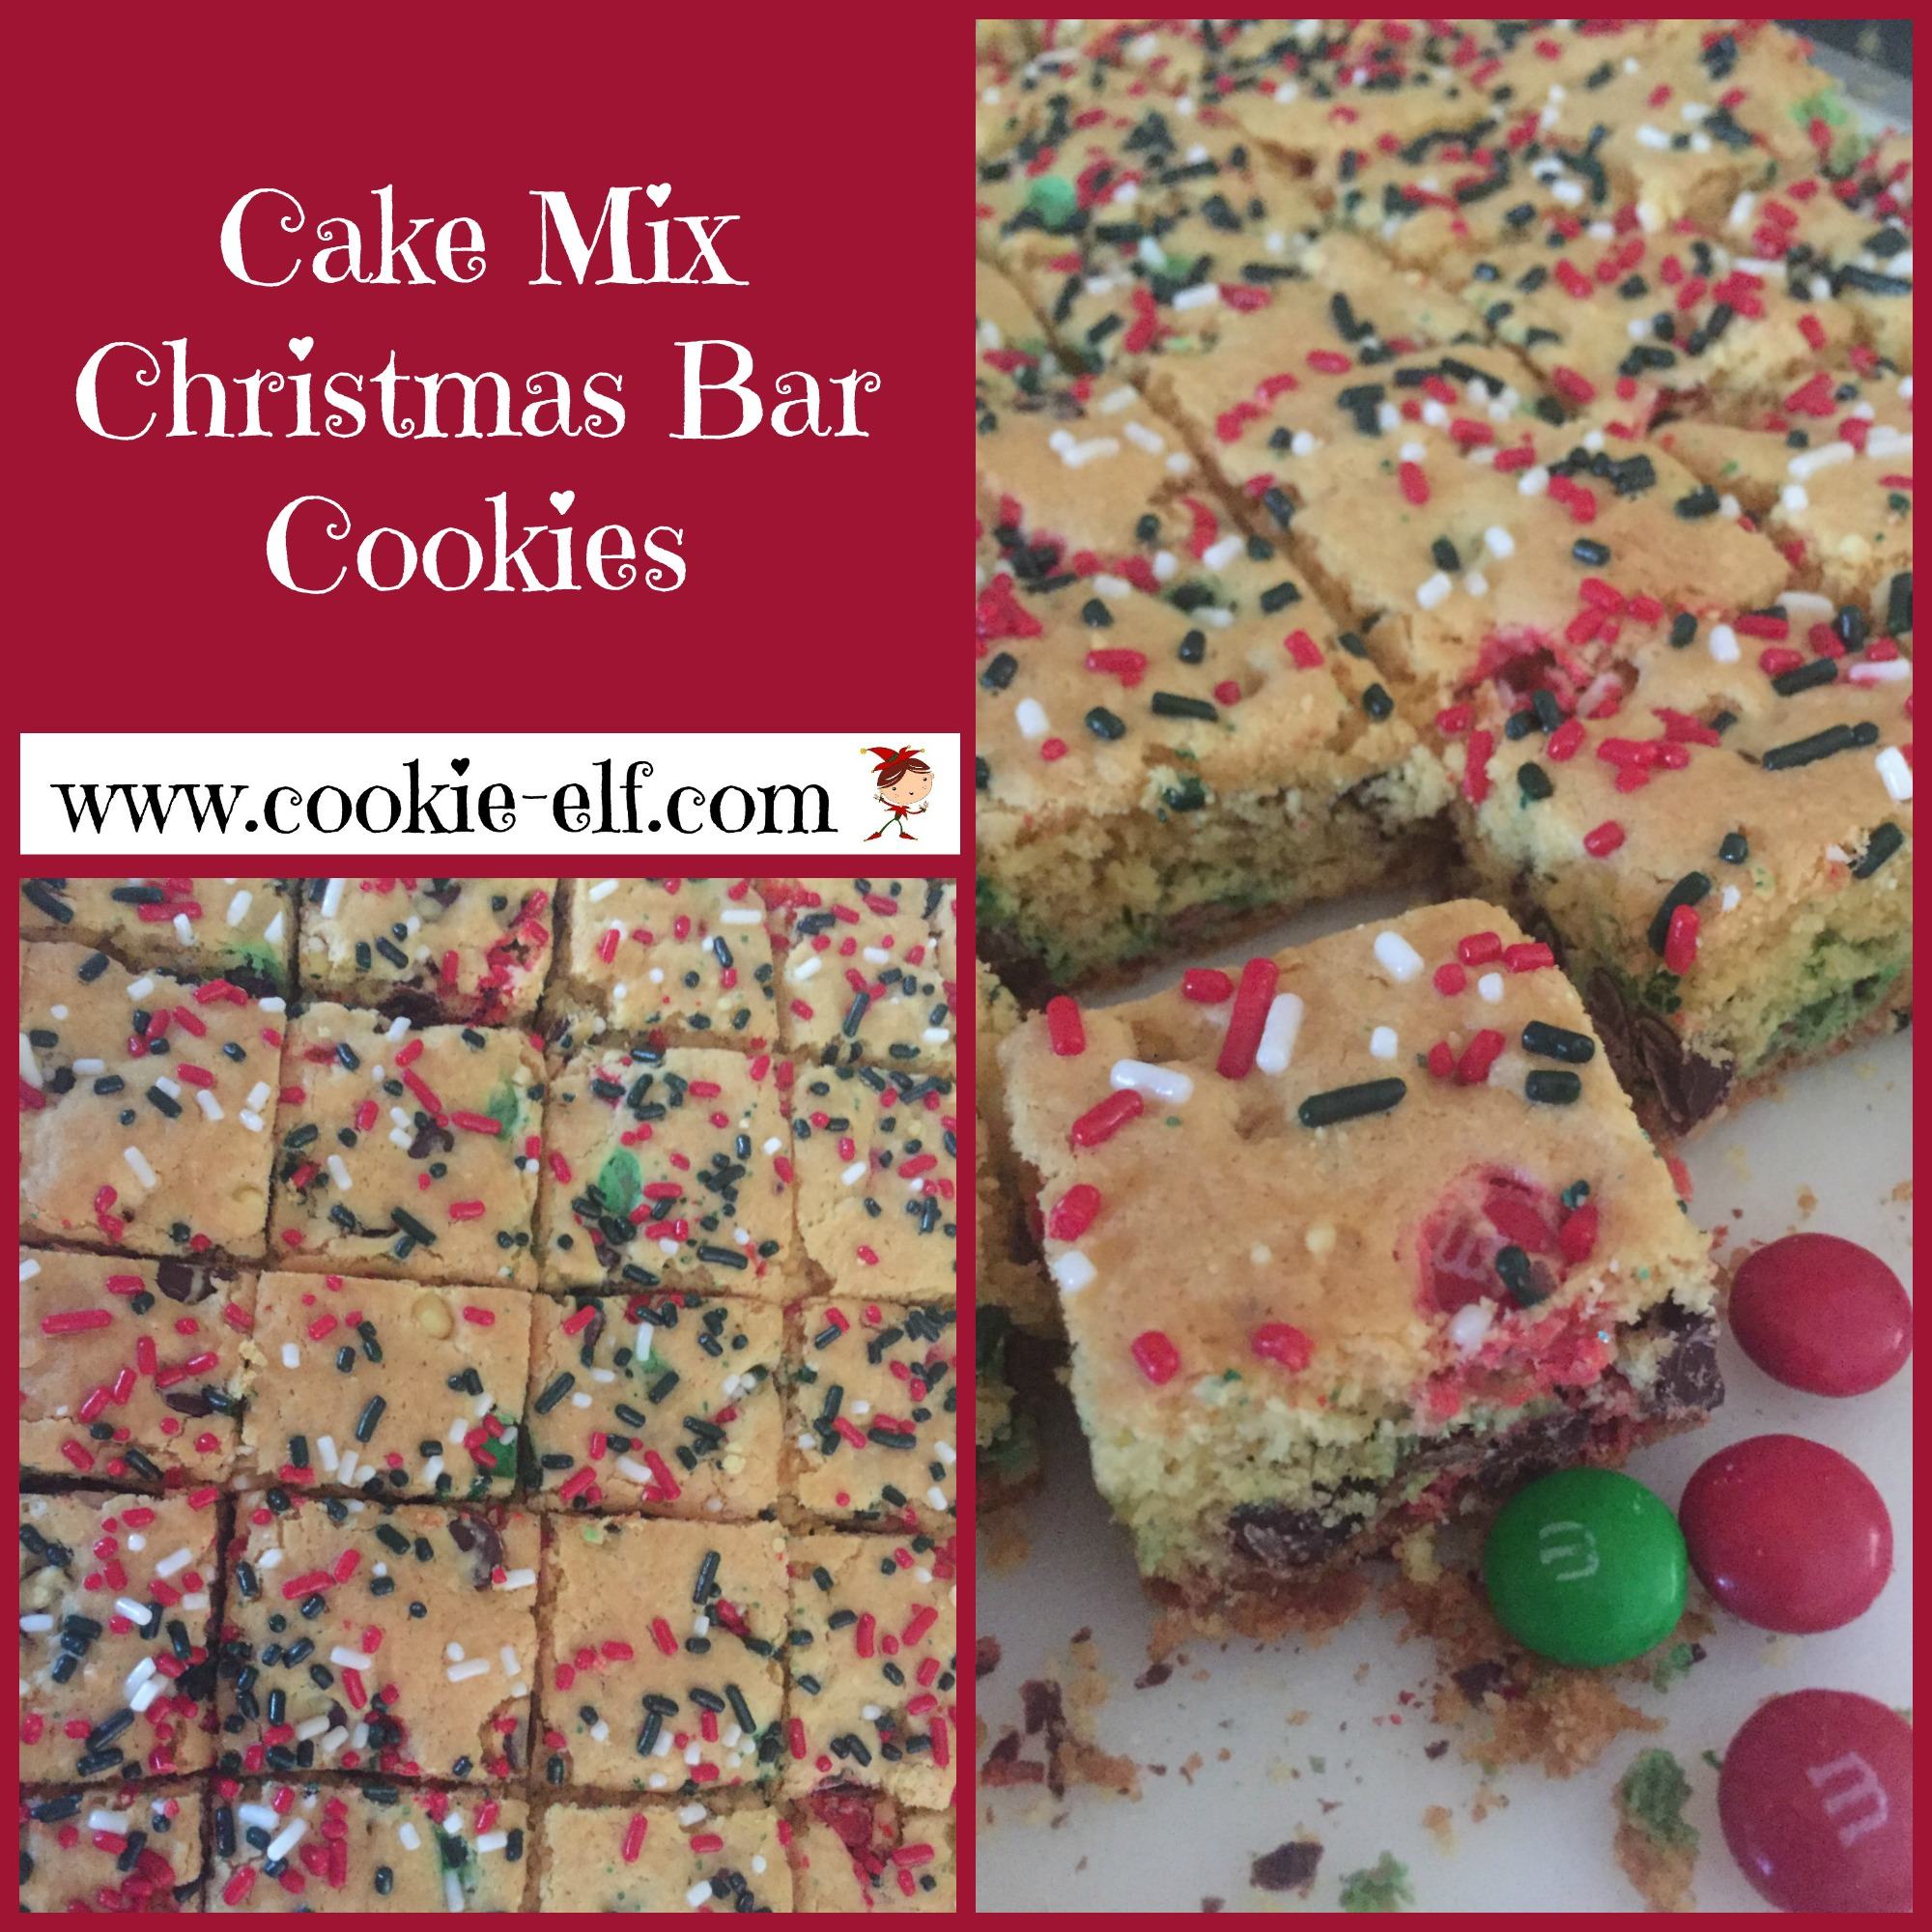 Cake Mix Christmas Bar Cookies with The Cookie Elf